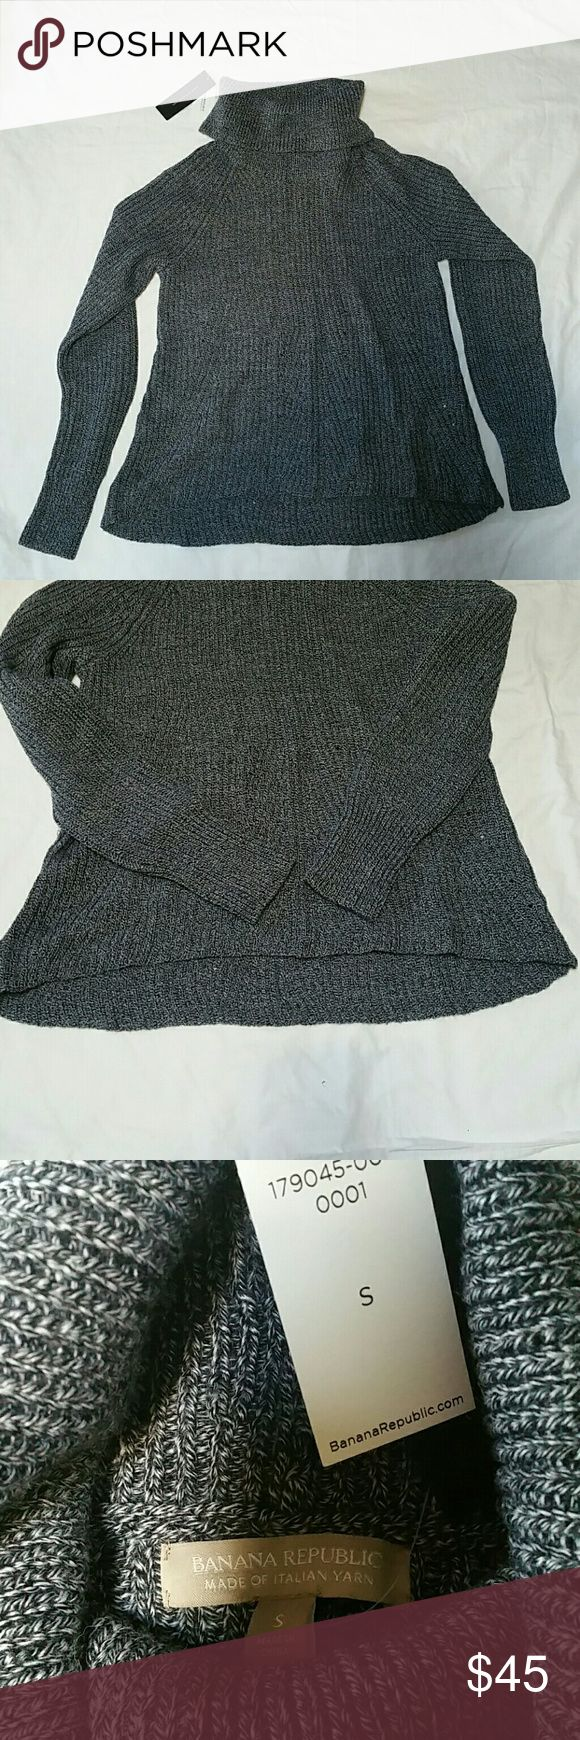 NWT Banana Republic, Italian Yarn Sweater, size S Turtle neck sweater made of Italian yarn, believe it's from their 2014 line. Approximately retail is $120.  The front is slightly shorter than the back hem.  Looks grey  in the 1st picture, but in the last picture, it shows its actually made of black and white yarn Banana Republic Sweaters Cowl & Turtlenecks